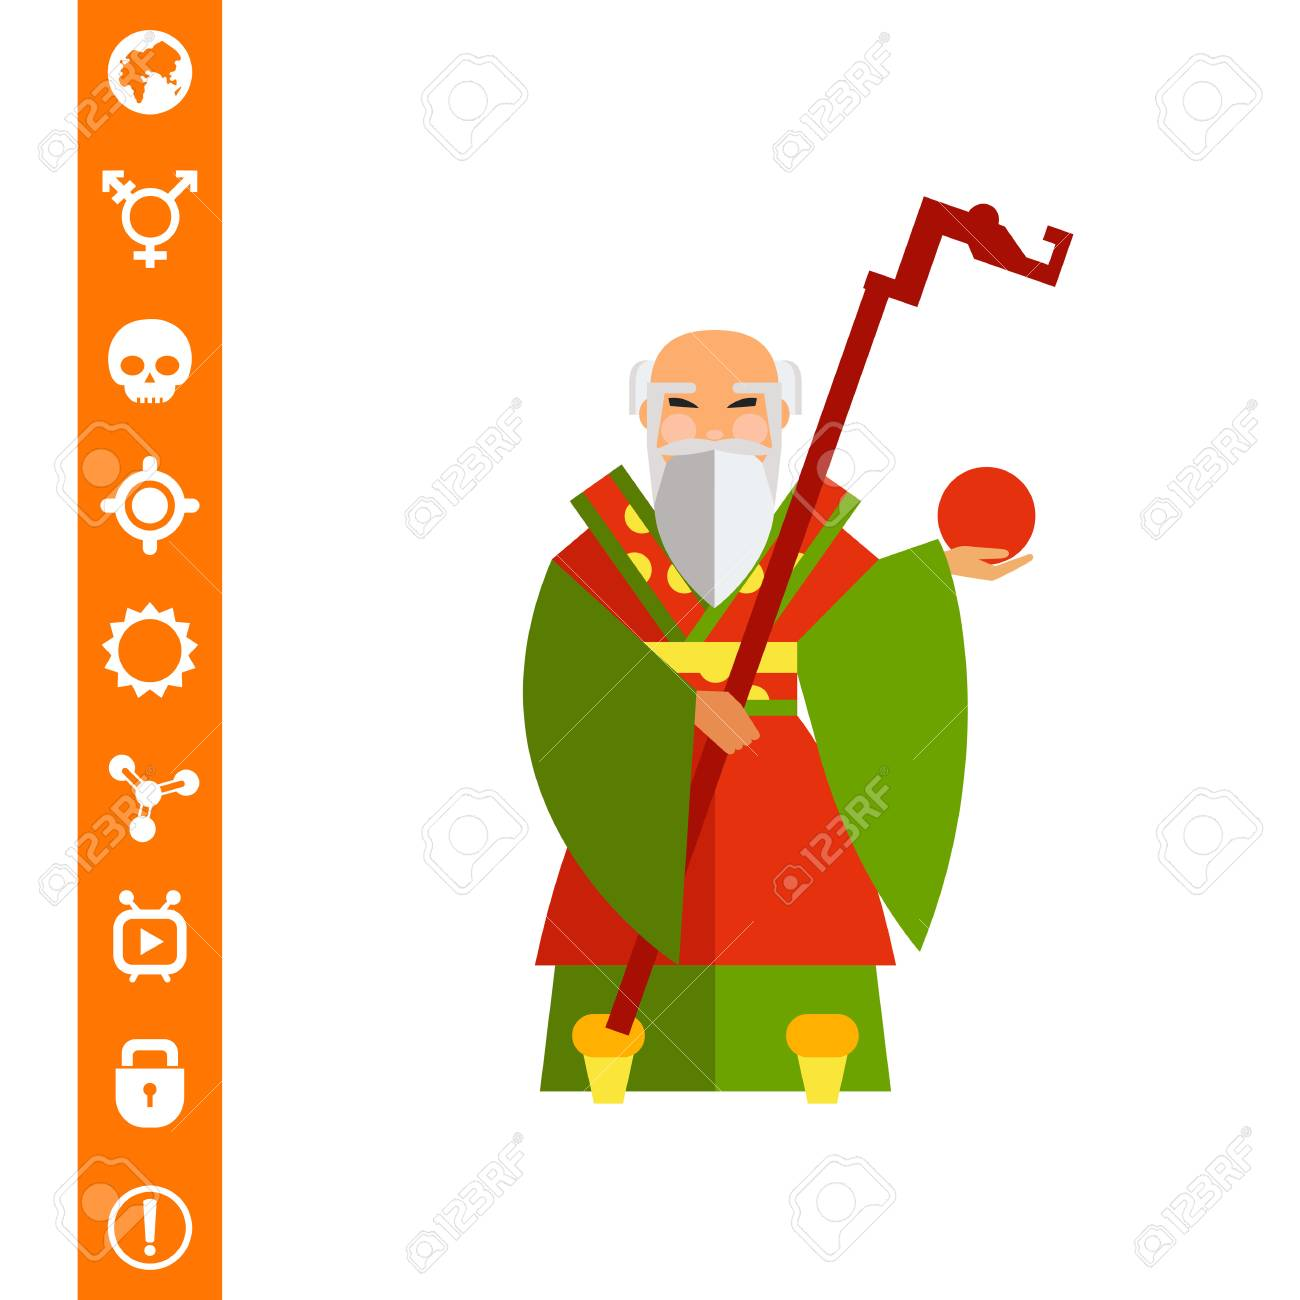 hight resolution of chinese old wise man icon stock vector 84862831